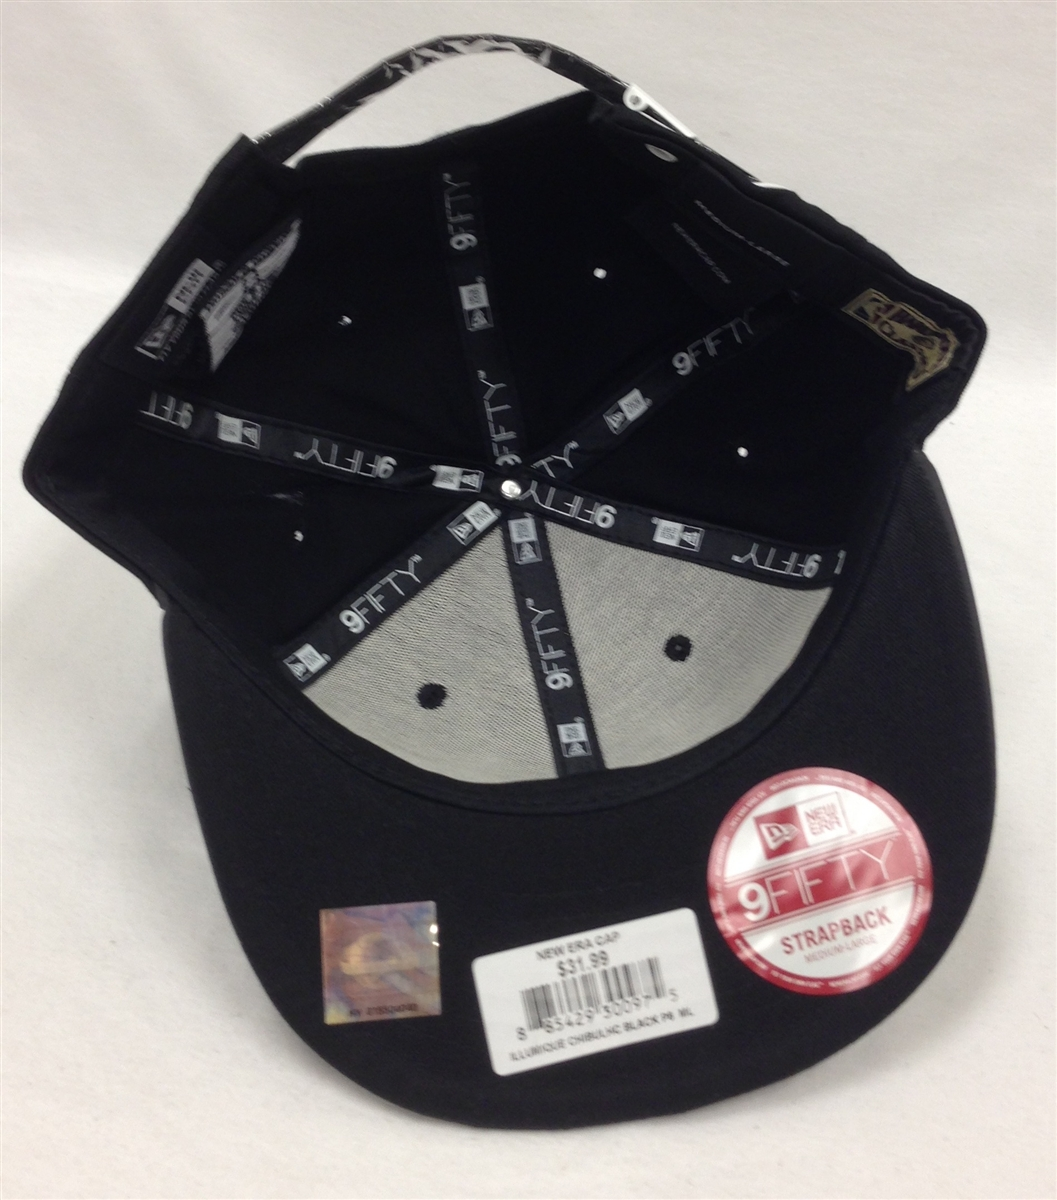 New Era 9Fifty Illumique Chicago Bulls Black Strapback 631a0d1493a